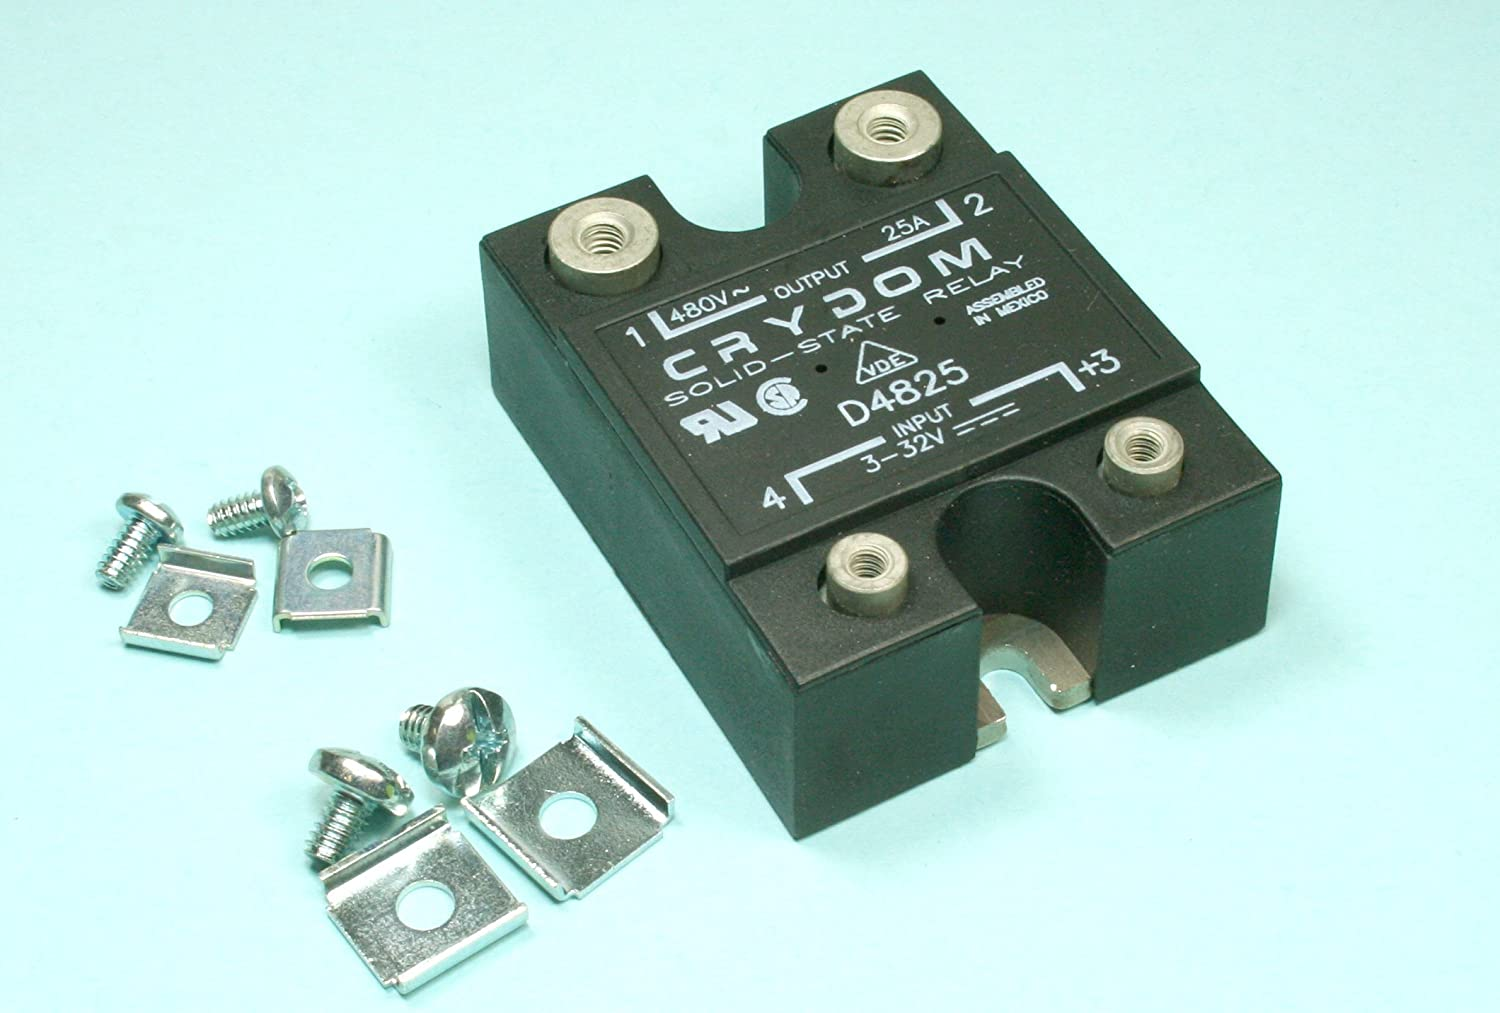 Rr 23 1pc Crydom Ssr Relay D4825 25 Amps 480vac With Hardware Solid State New Basic Of Industrial Scientific